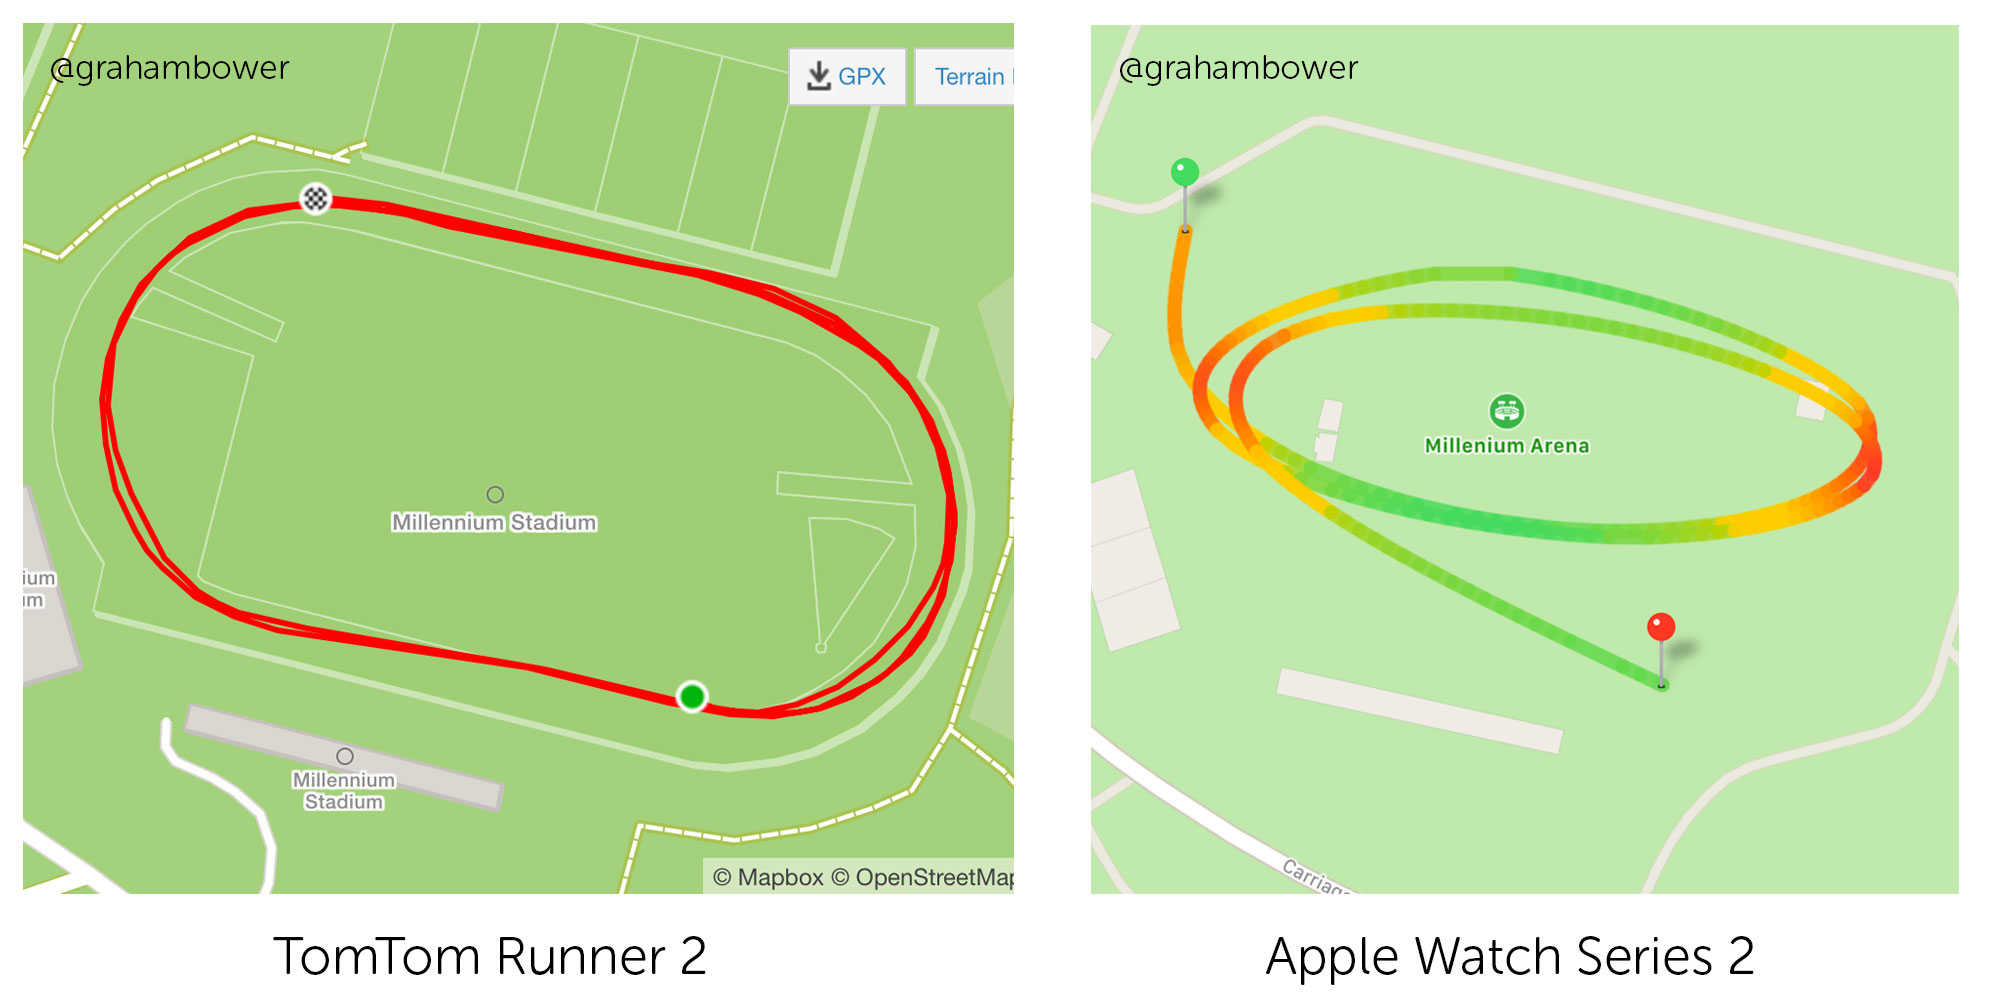 Apple Watch Series 2 can't keep up with TomTom when route mapping the running track